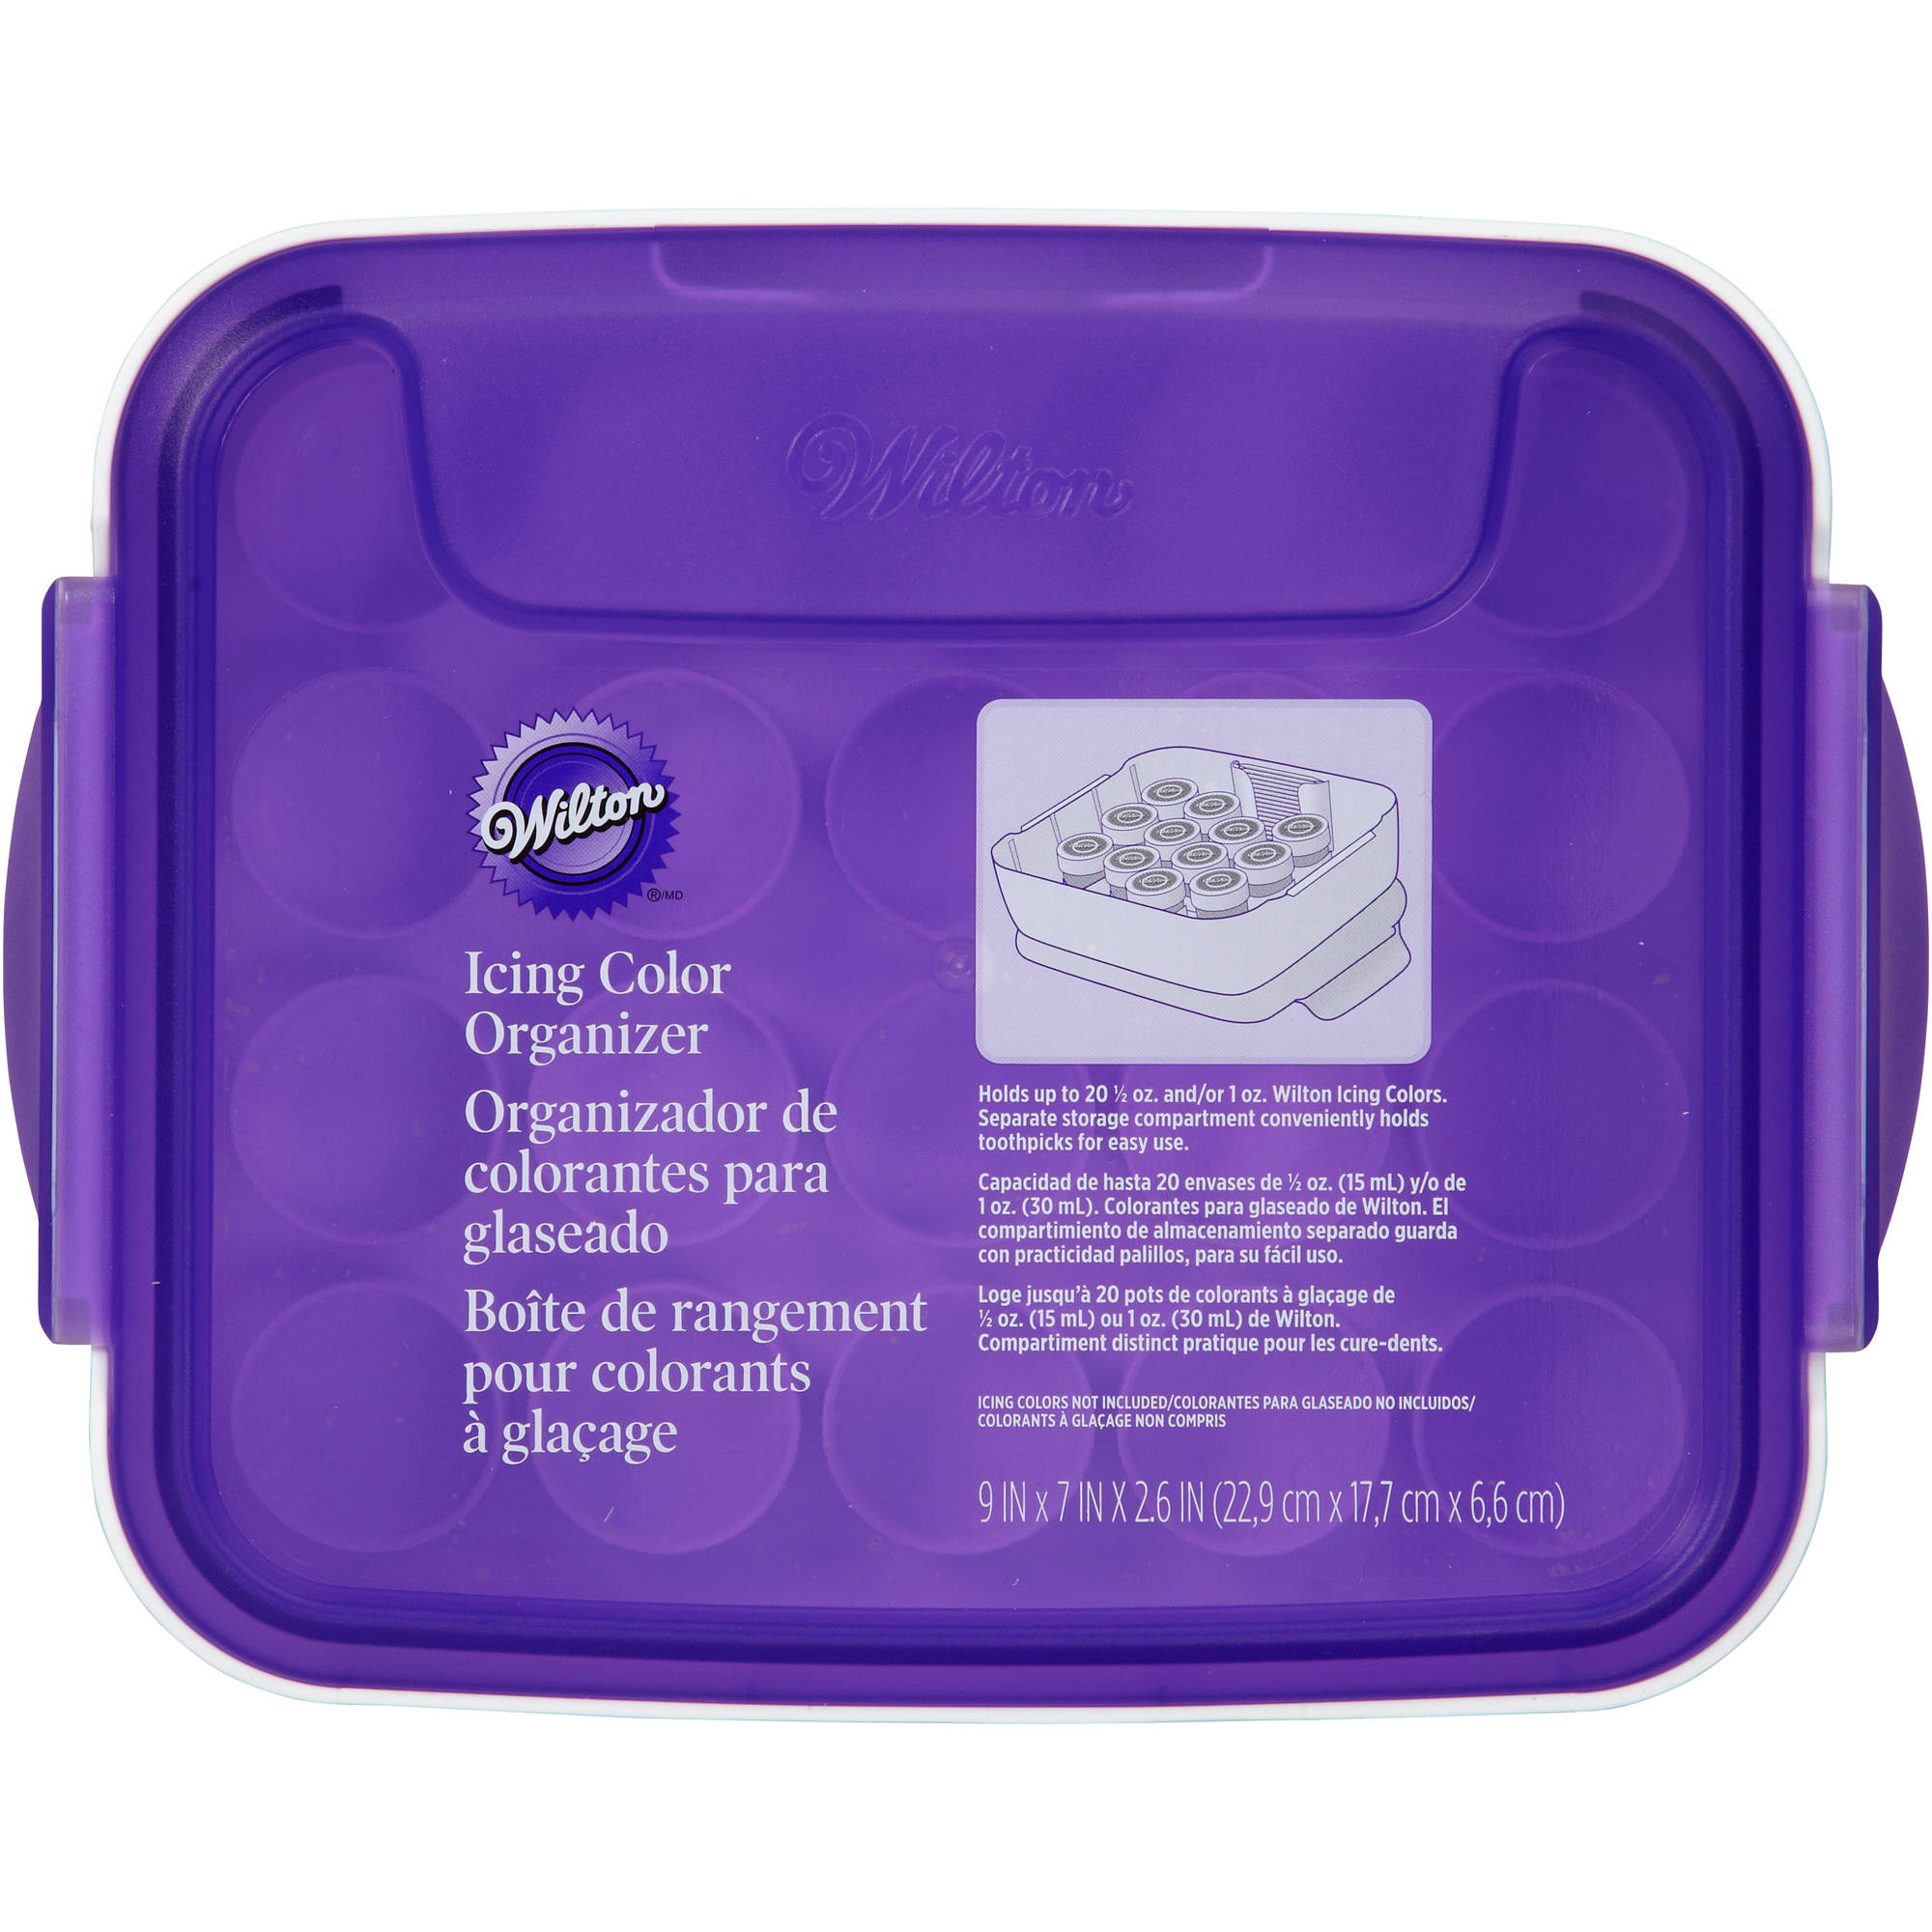 "Wilton 9""x7""x2.5"" Icing Color Organizer, White & Purple 405-8783"